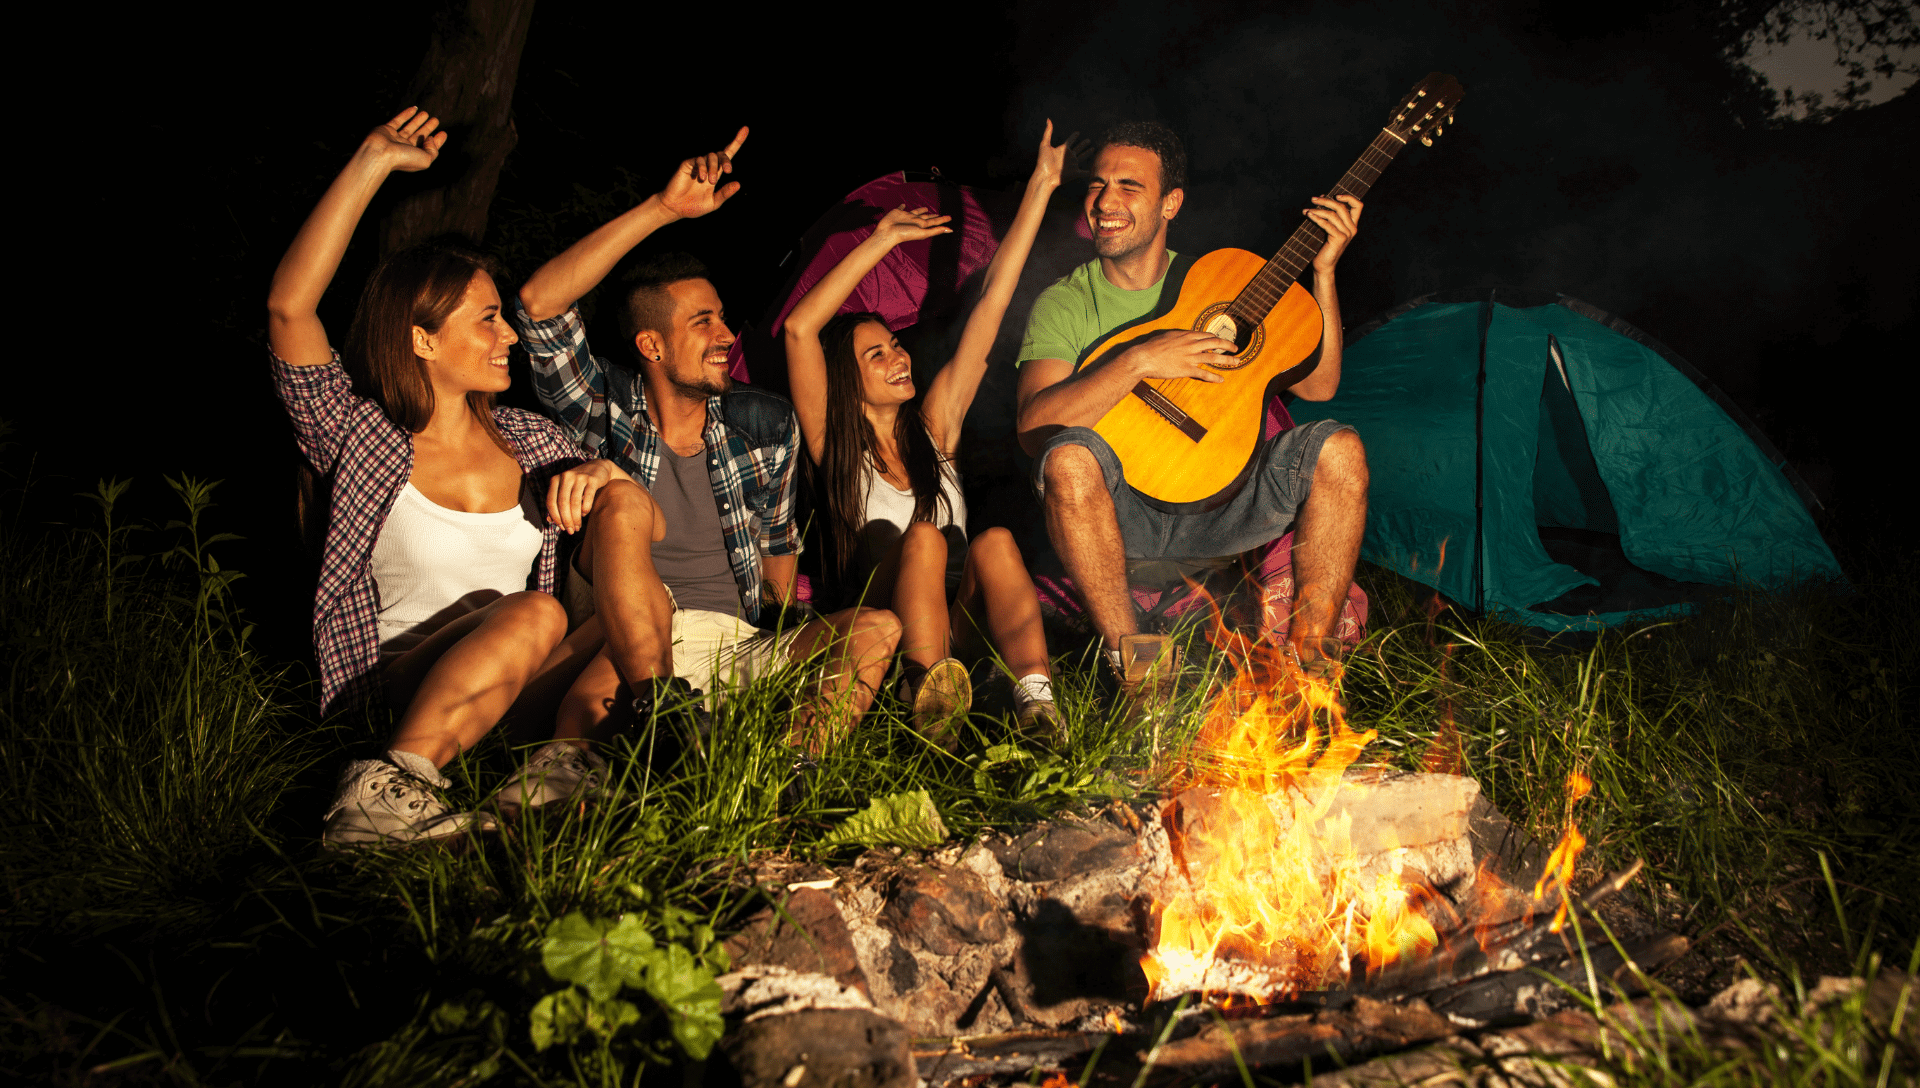 Four adult friends sit by a fire while singing campfire songs. One is playing the guitar and the others have their hands in the air while singing along.